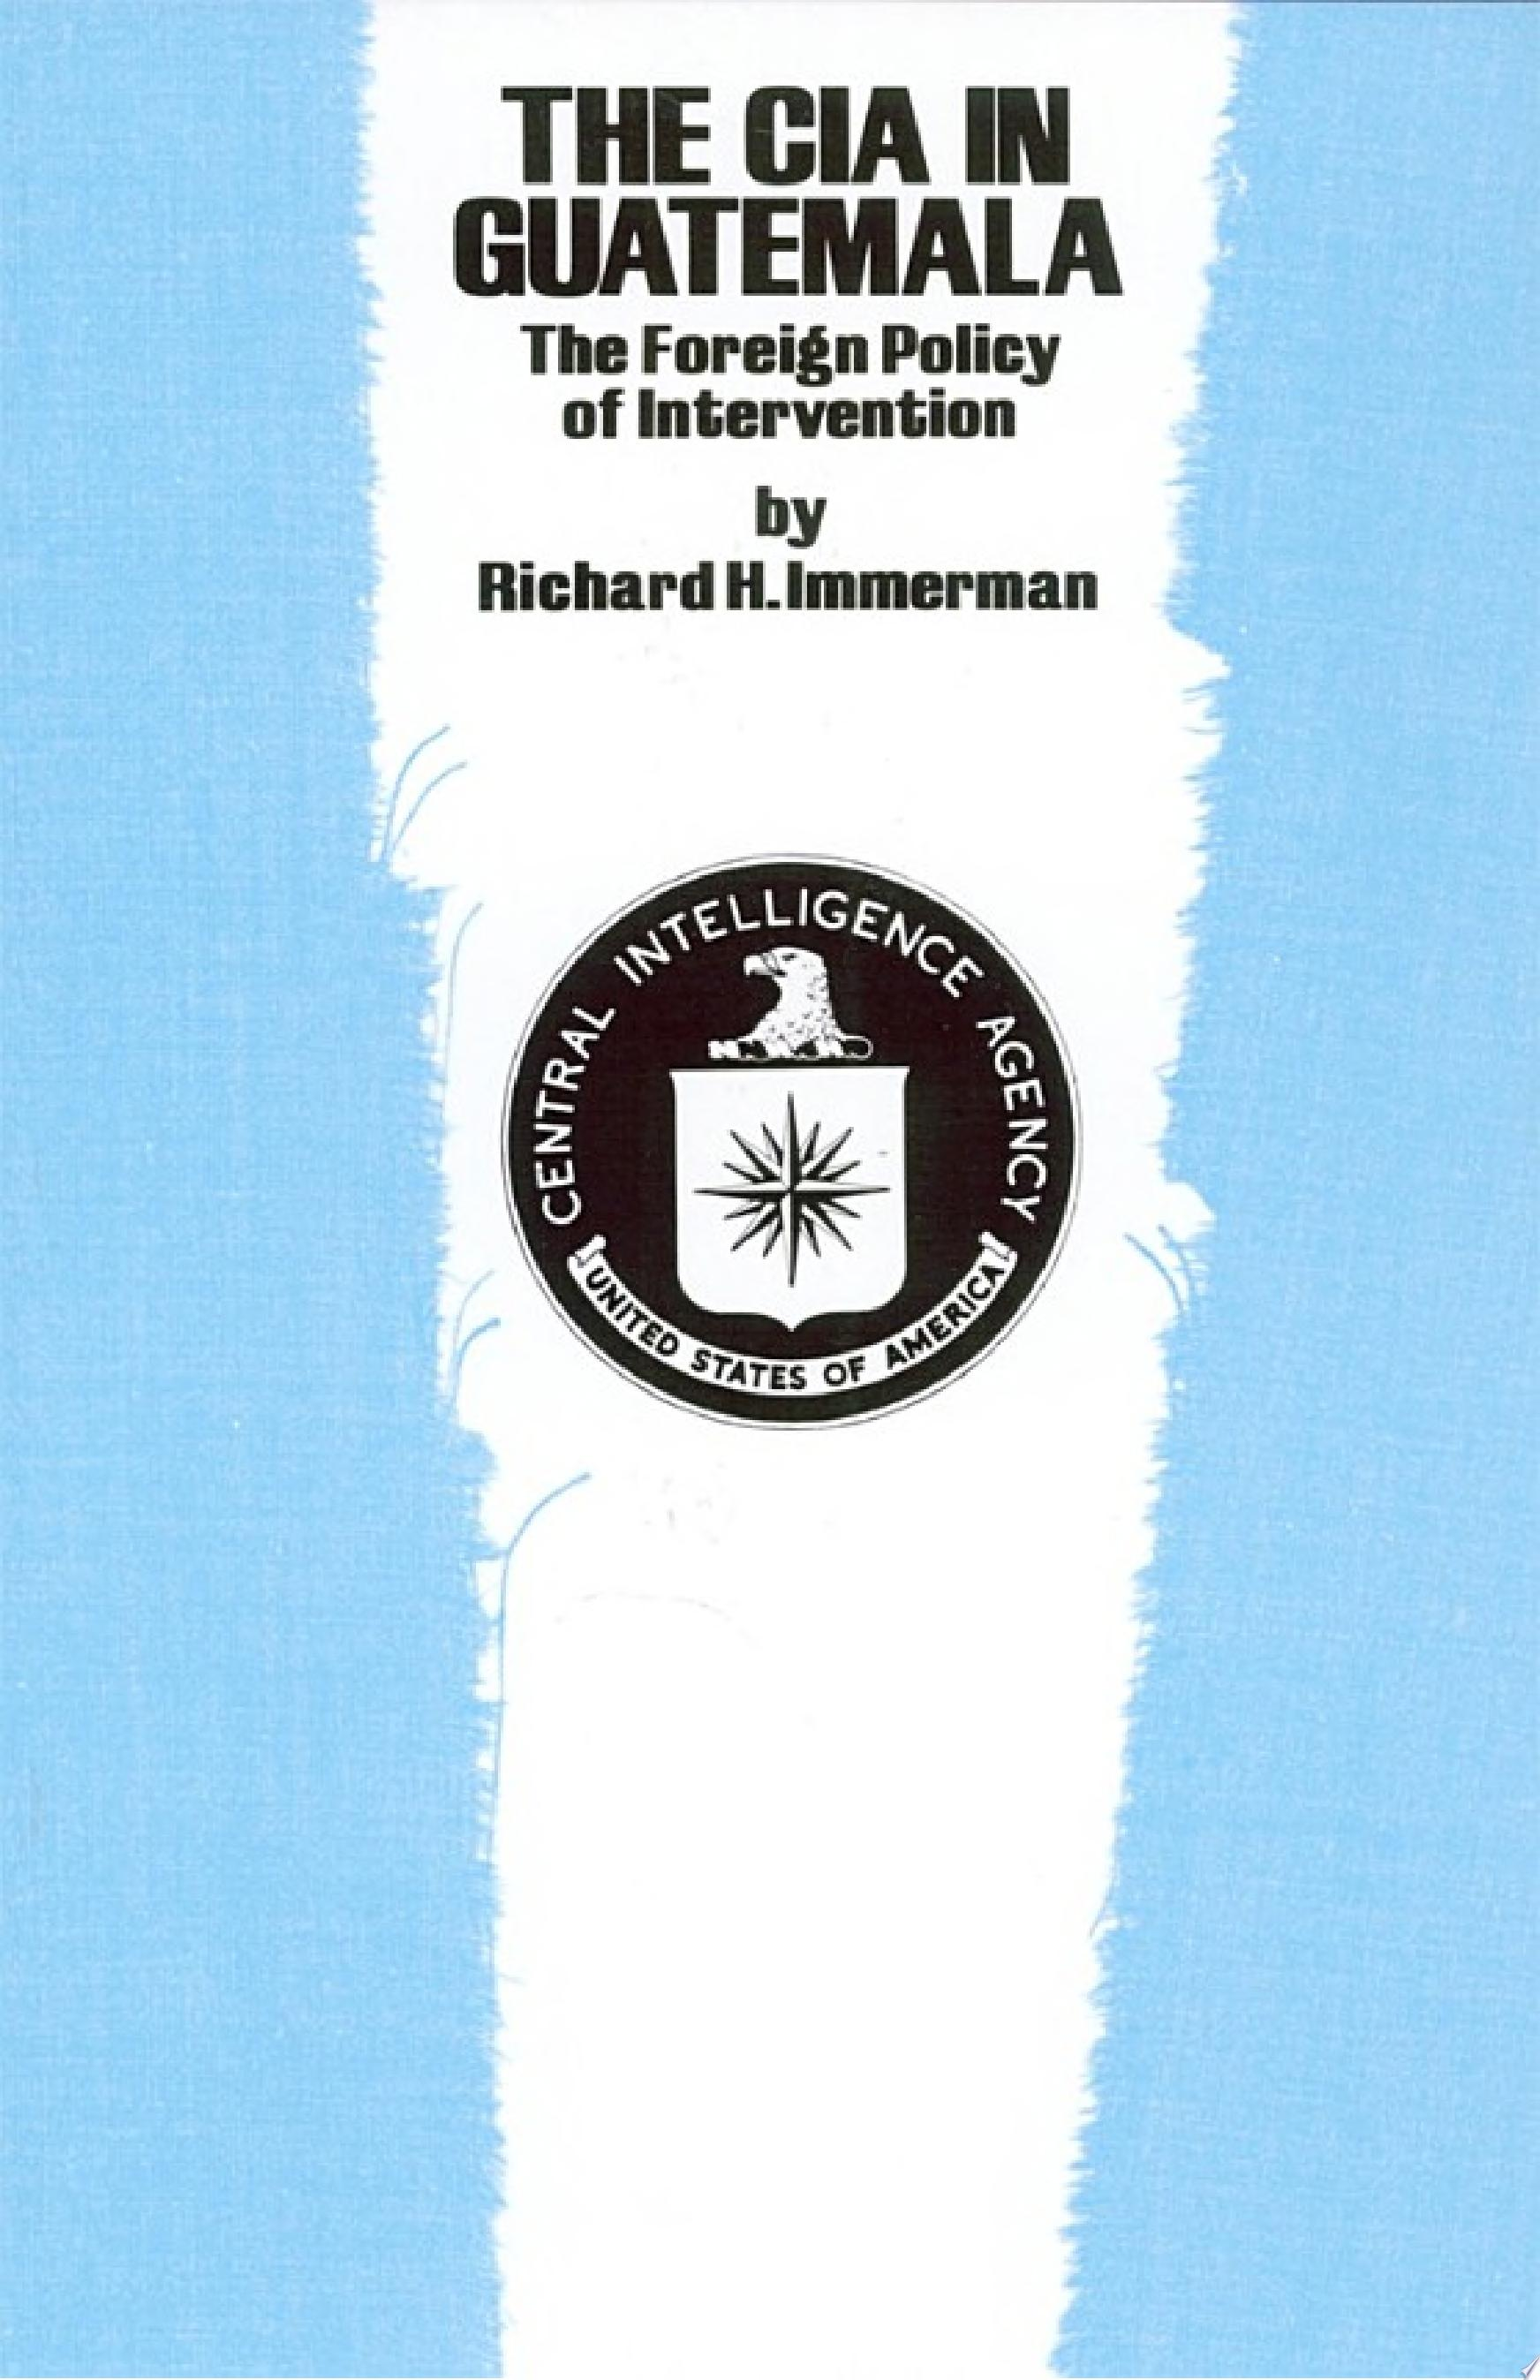 The CIA in Guatemala